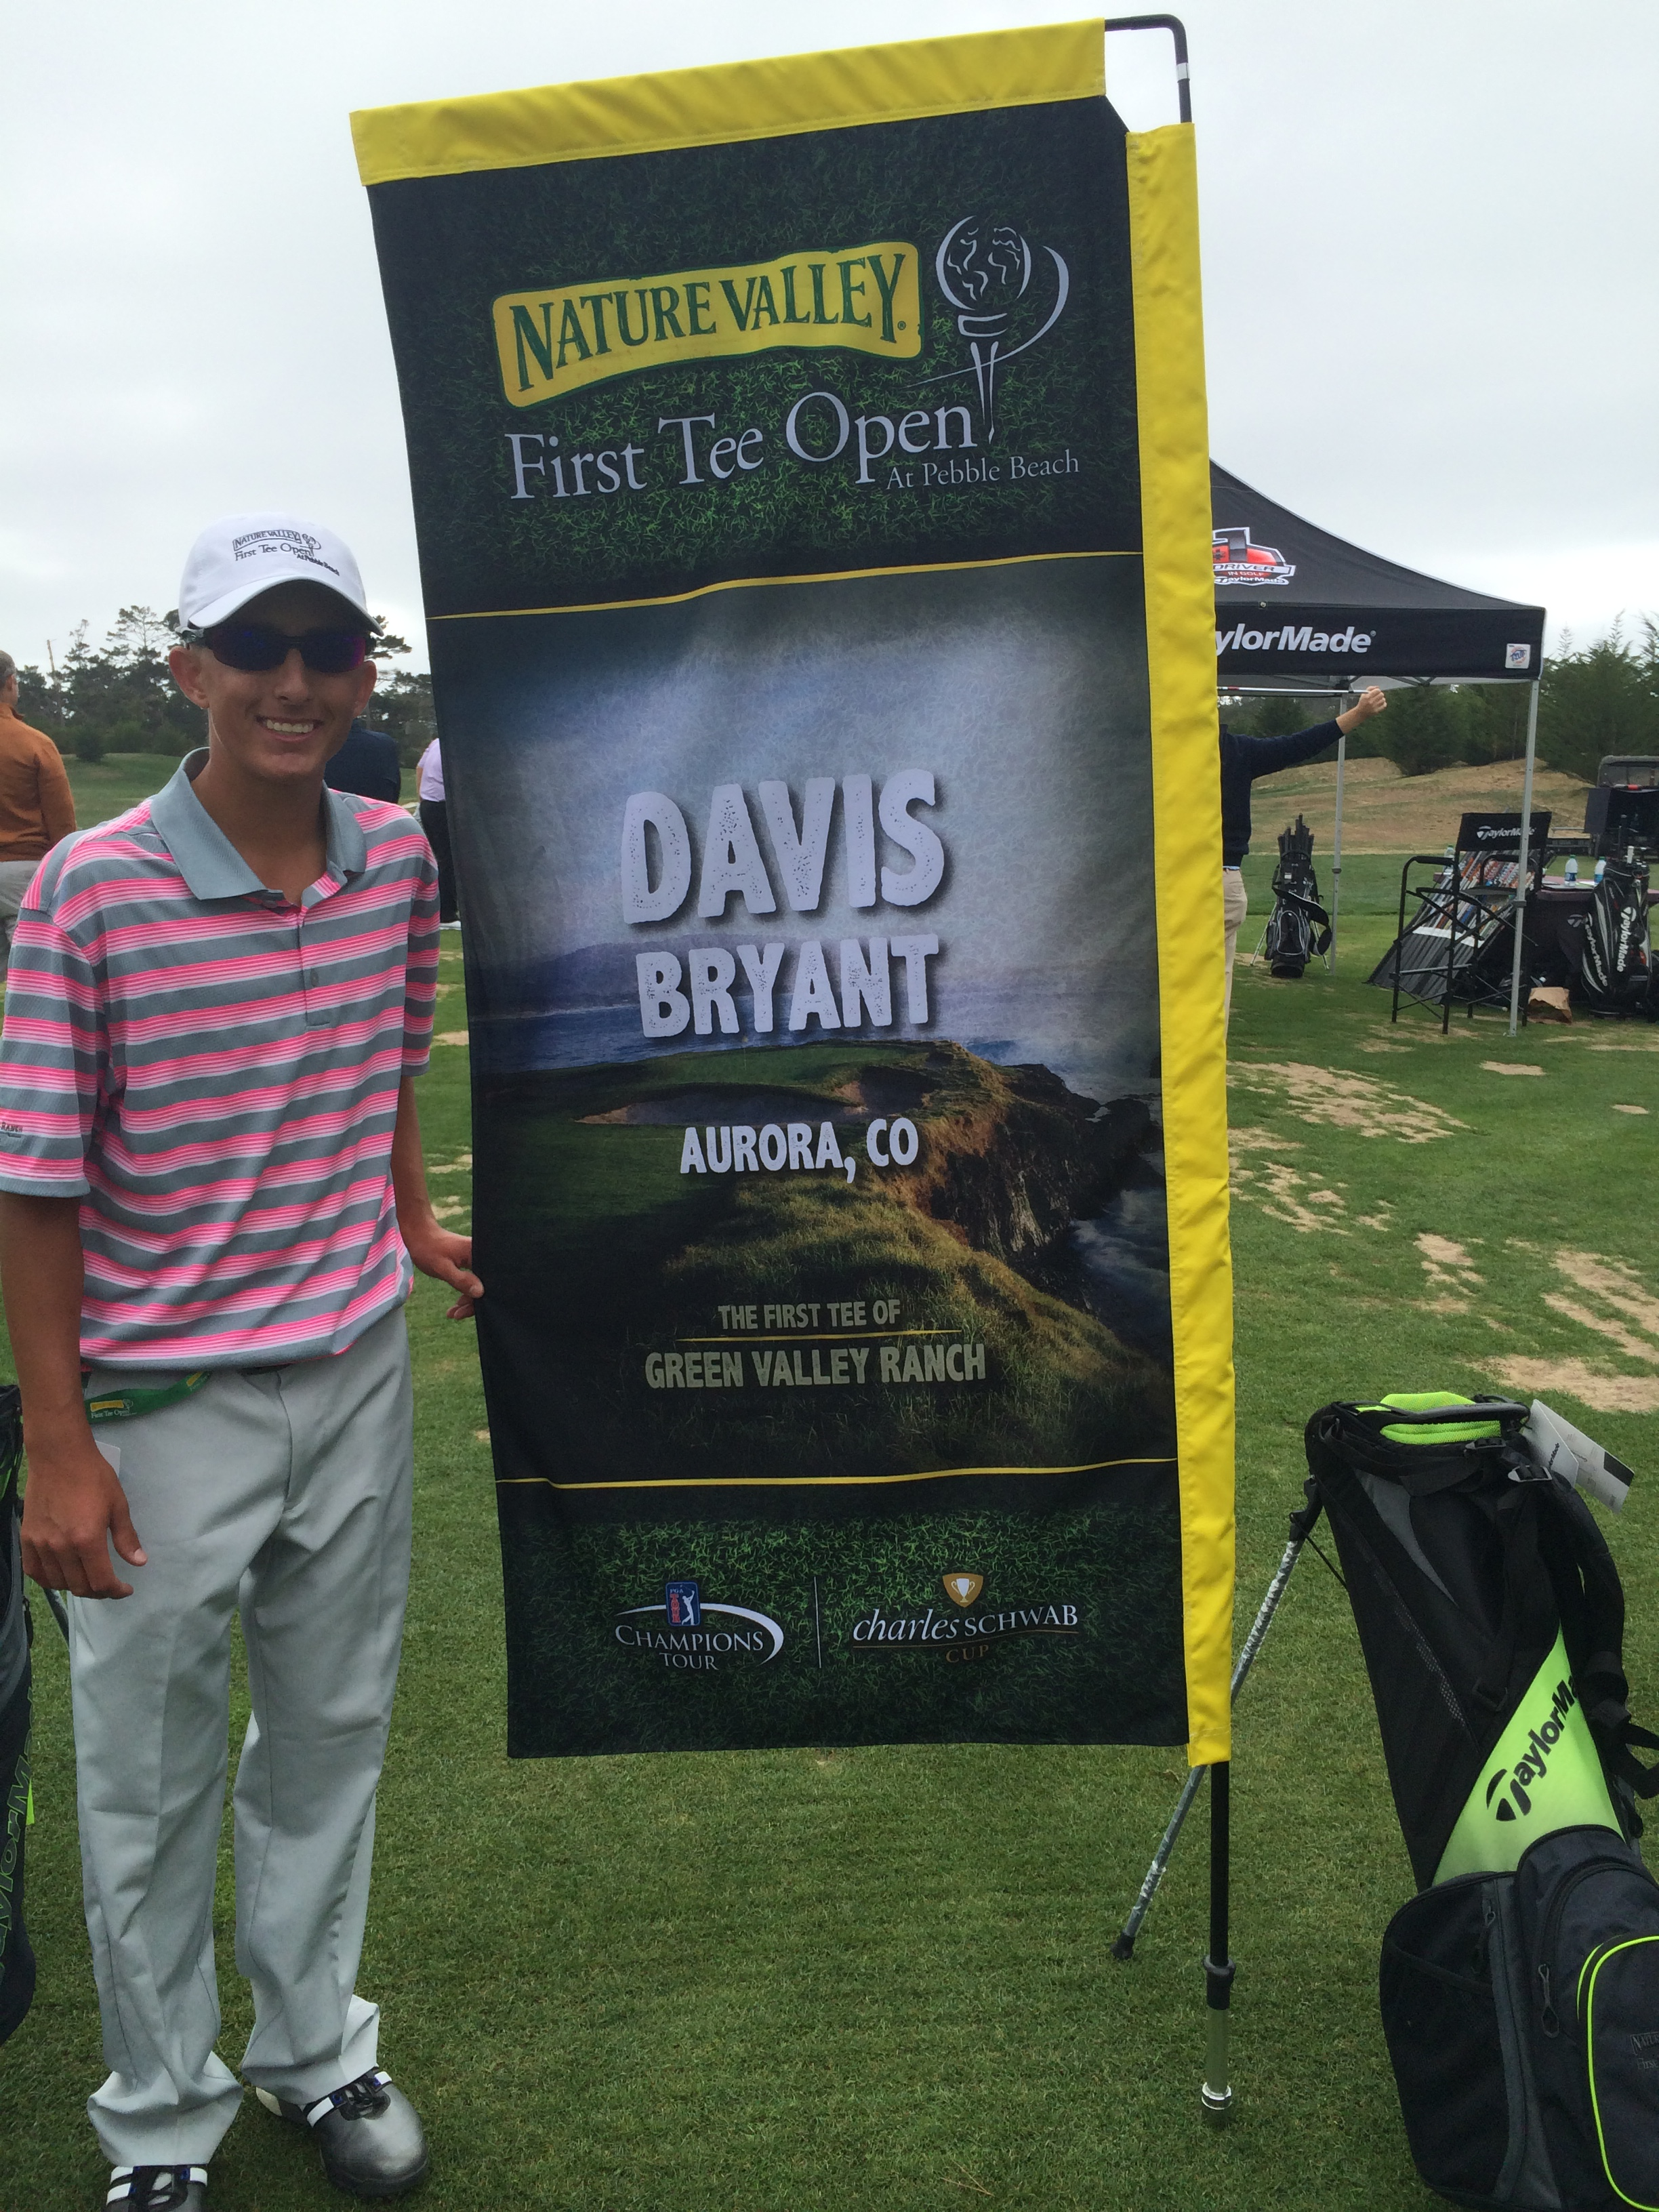 16 04 24 Davis 1st Tee Pebble Open Banner Sign